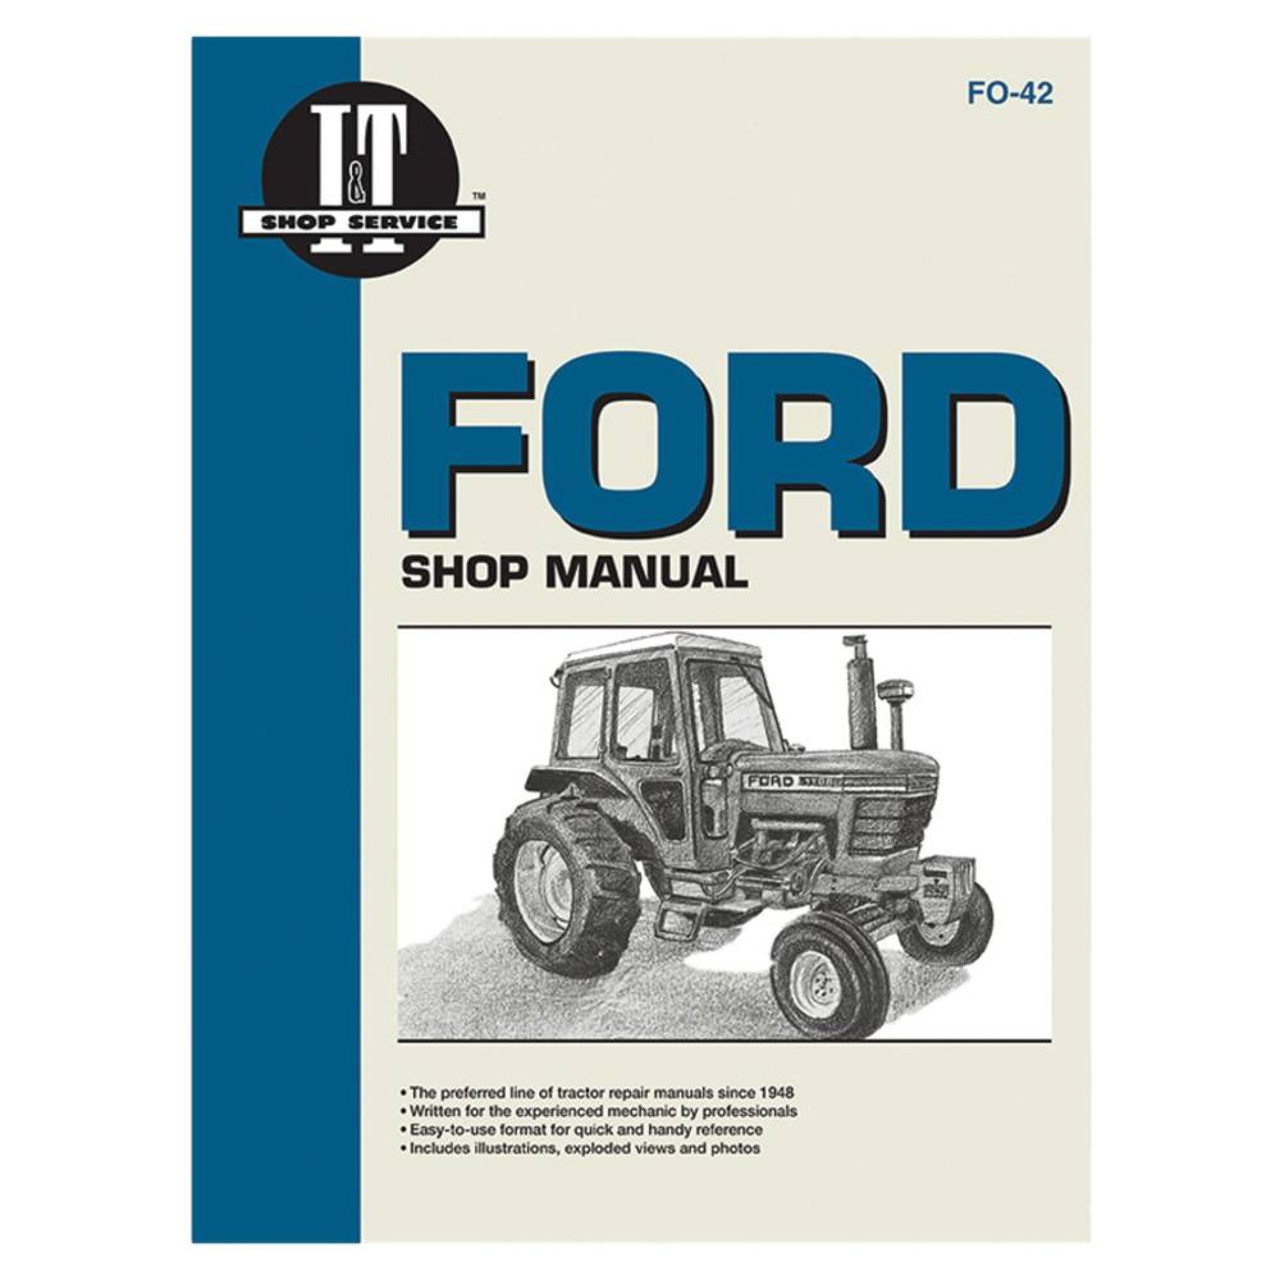 [SCHEMATICS_4NL]  9DCAA1A Ford 5600 Tractor Wiring Diagram | Wiring Resources | Wiring Diagram For Ford Tractor 6600 |  | Wiring Resources